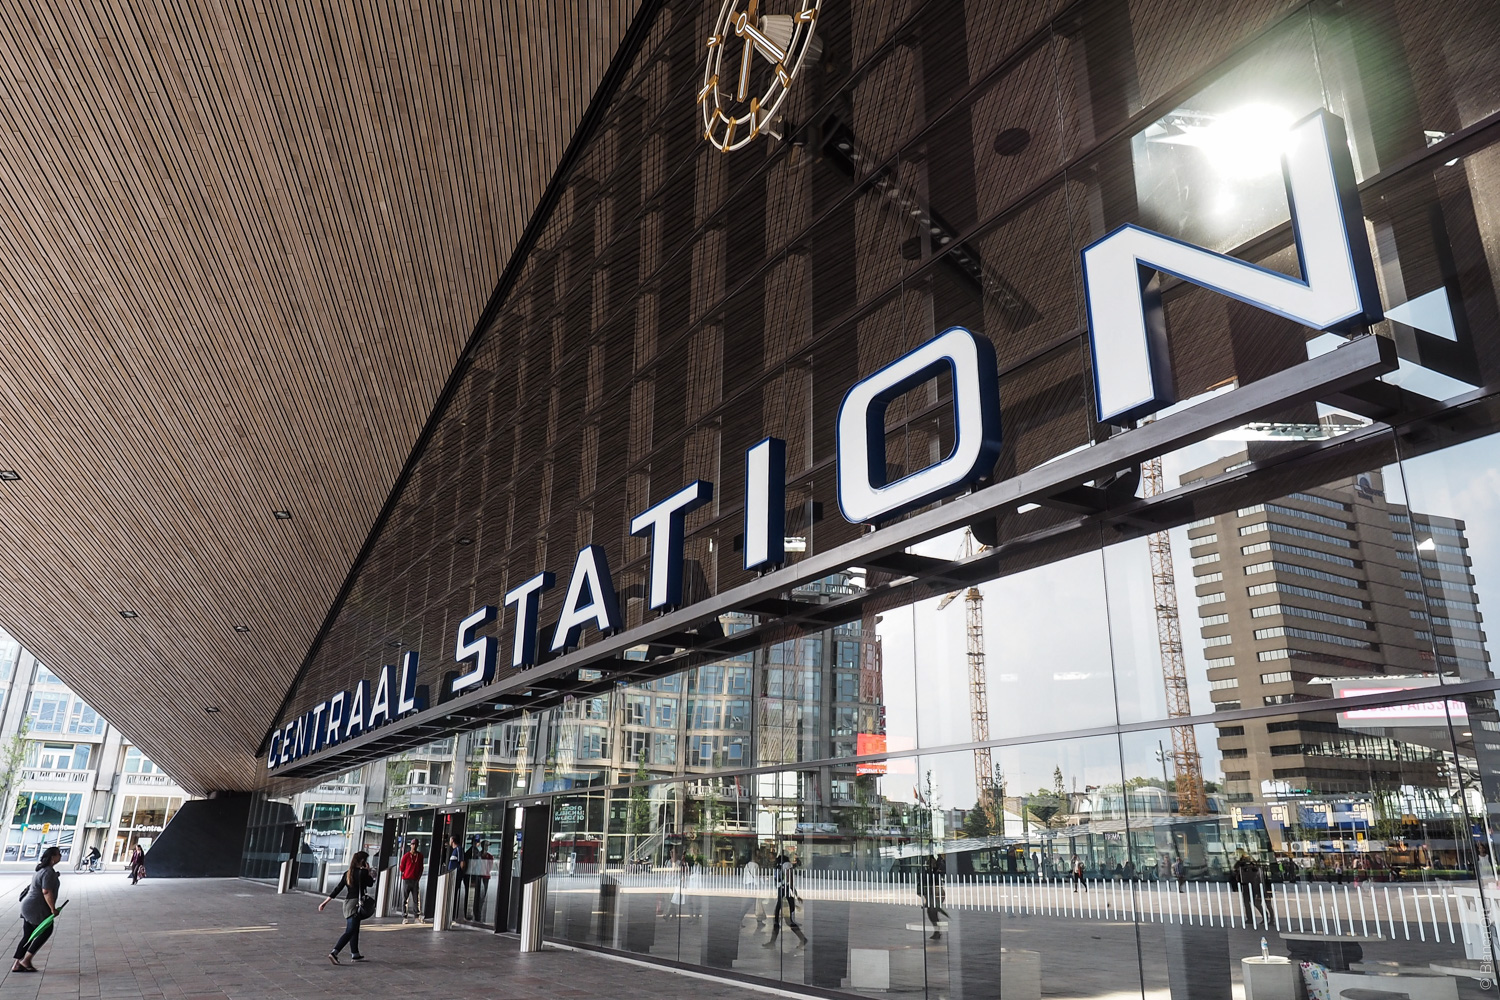 Typo_Centraal_Station